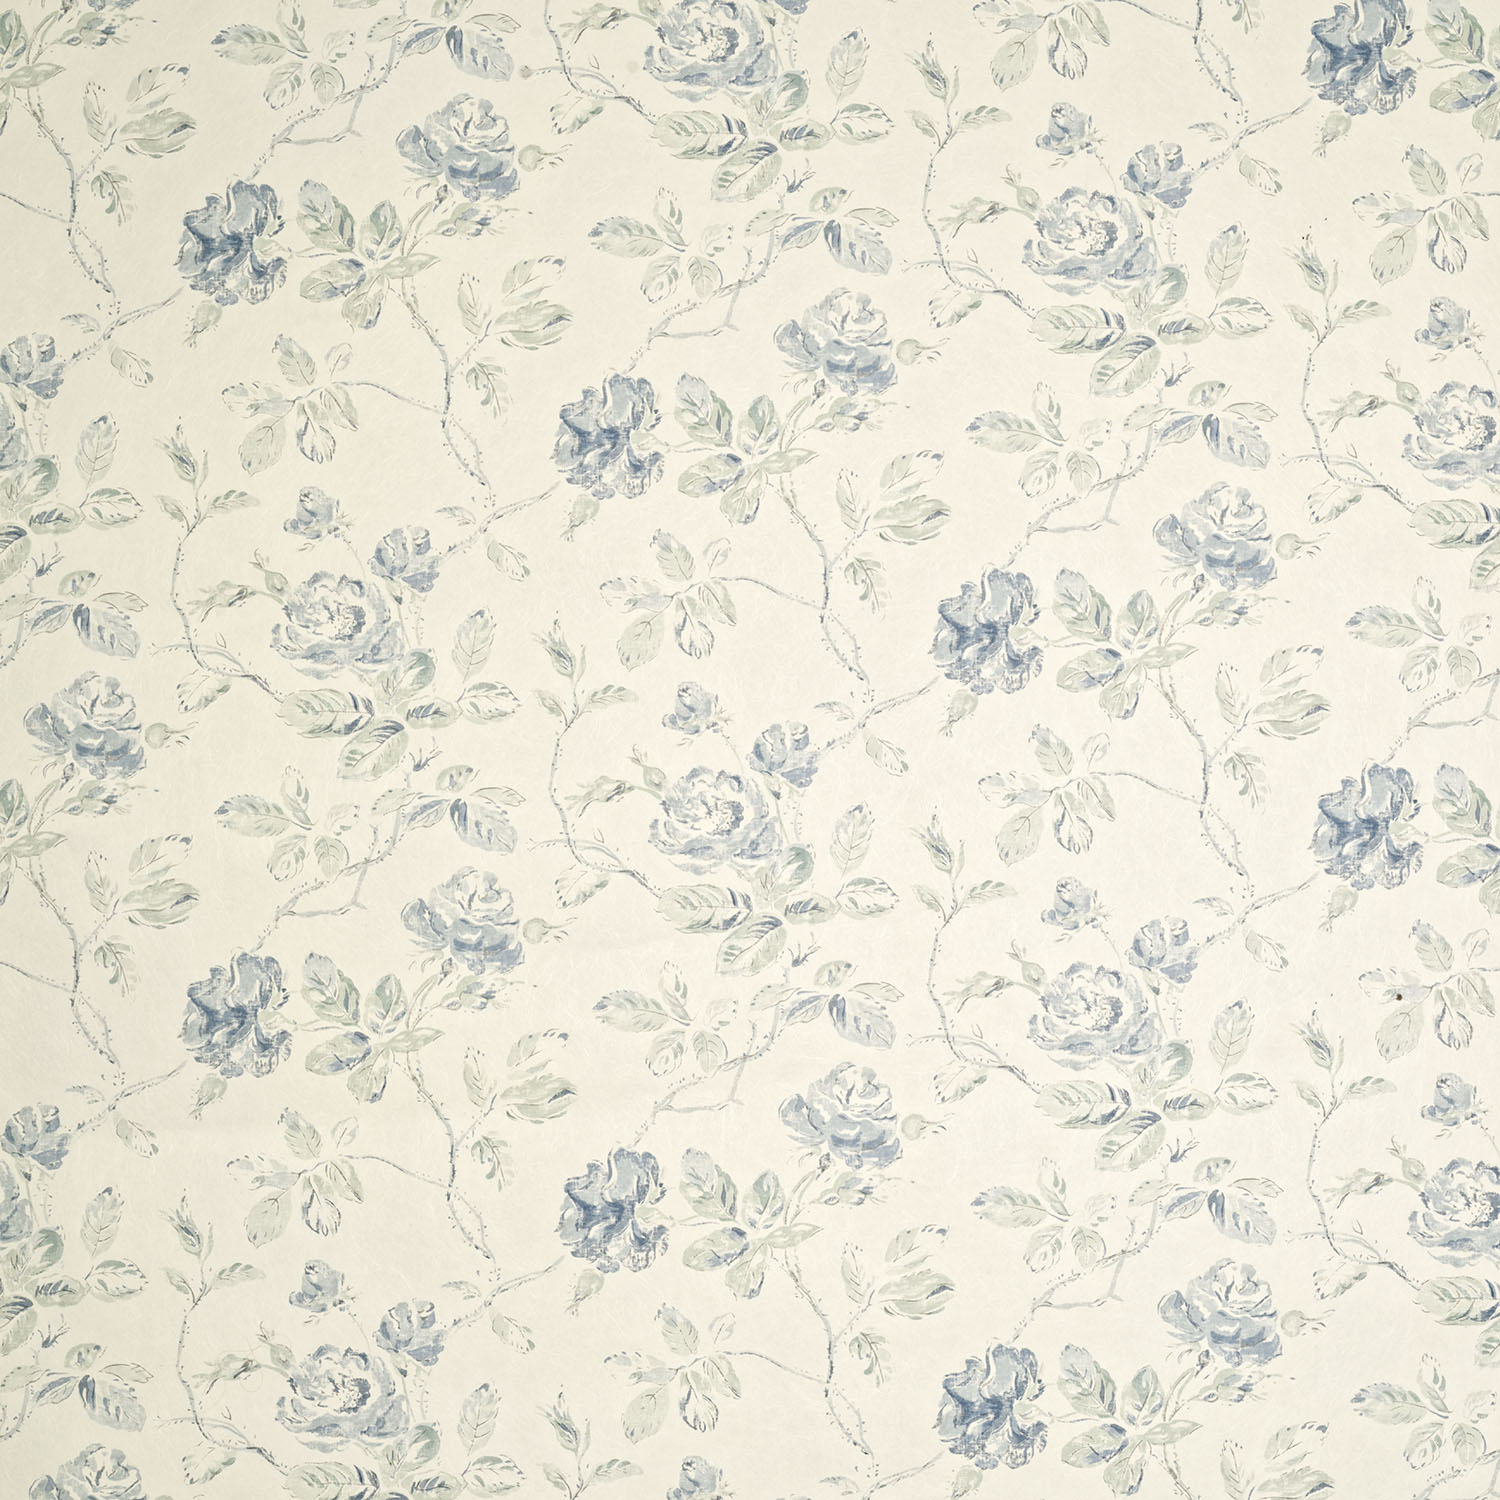 <p><strong>MARLOW</strong>blue/mint/white 980-05<a href=/collection-3/marlow-blue-mint-white-980-05>More →</a></p>